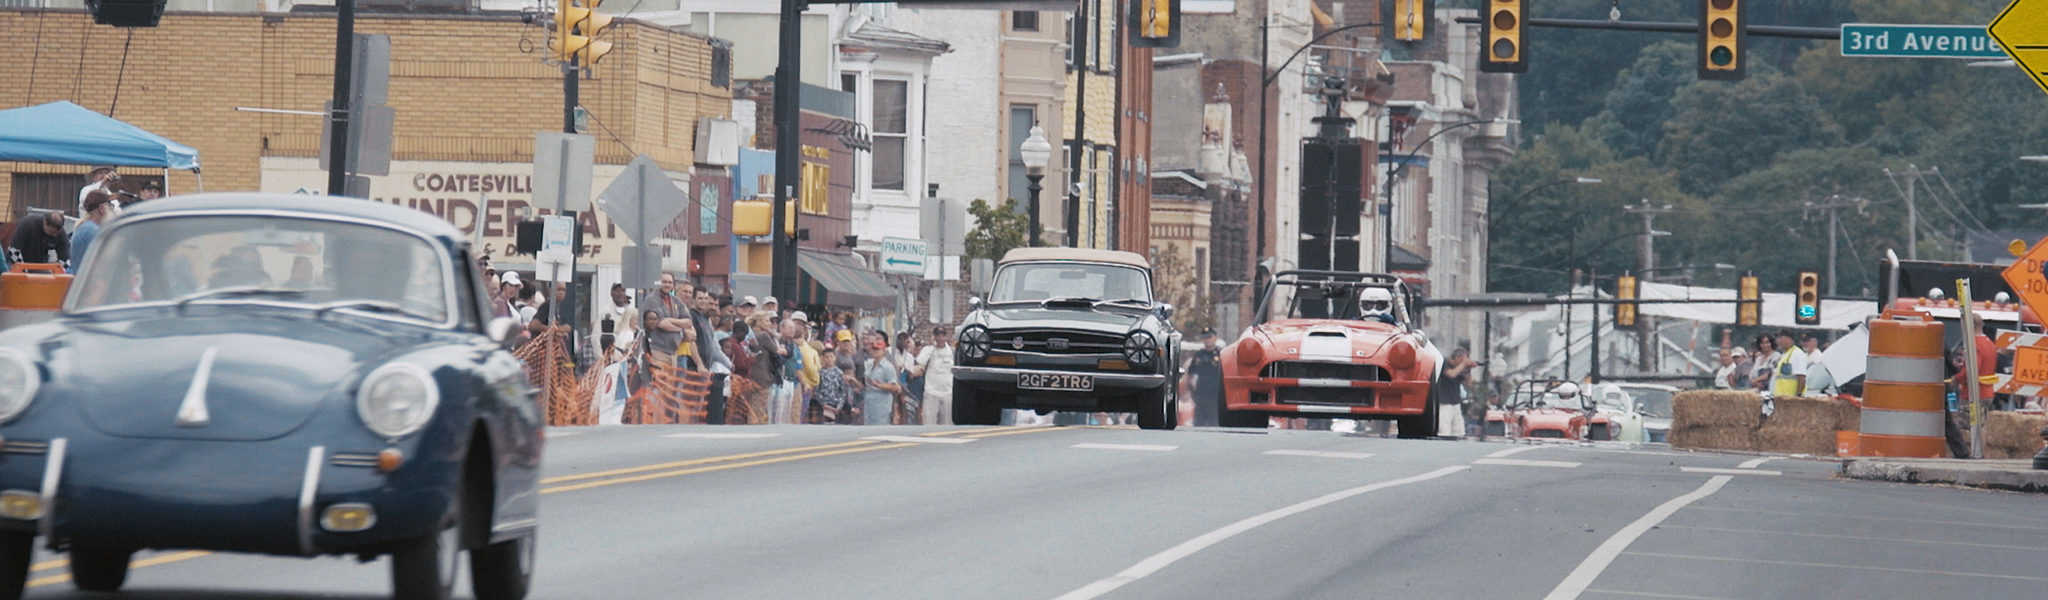 The Coatesville Vintage Grand Prix